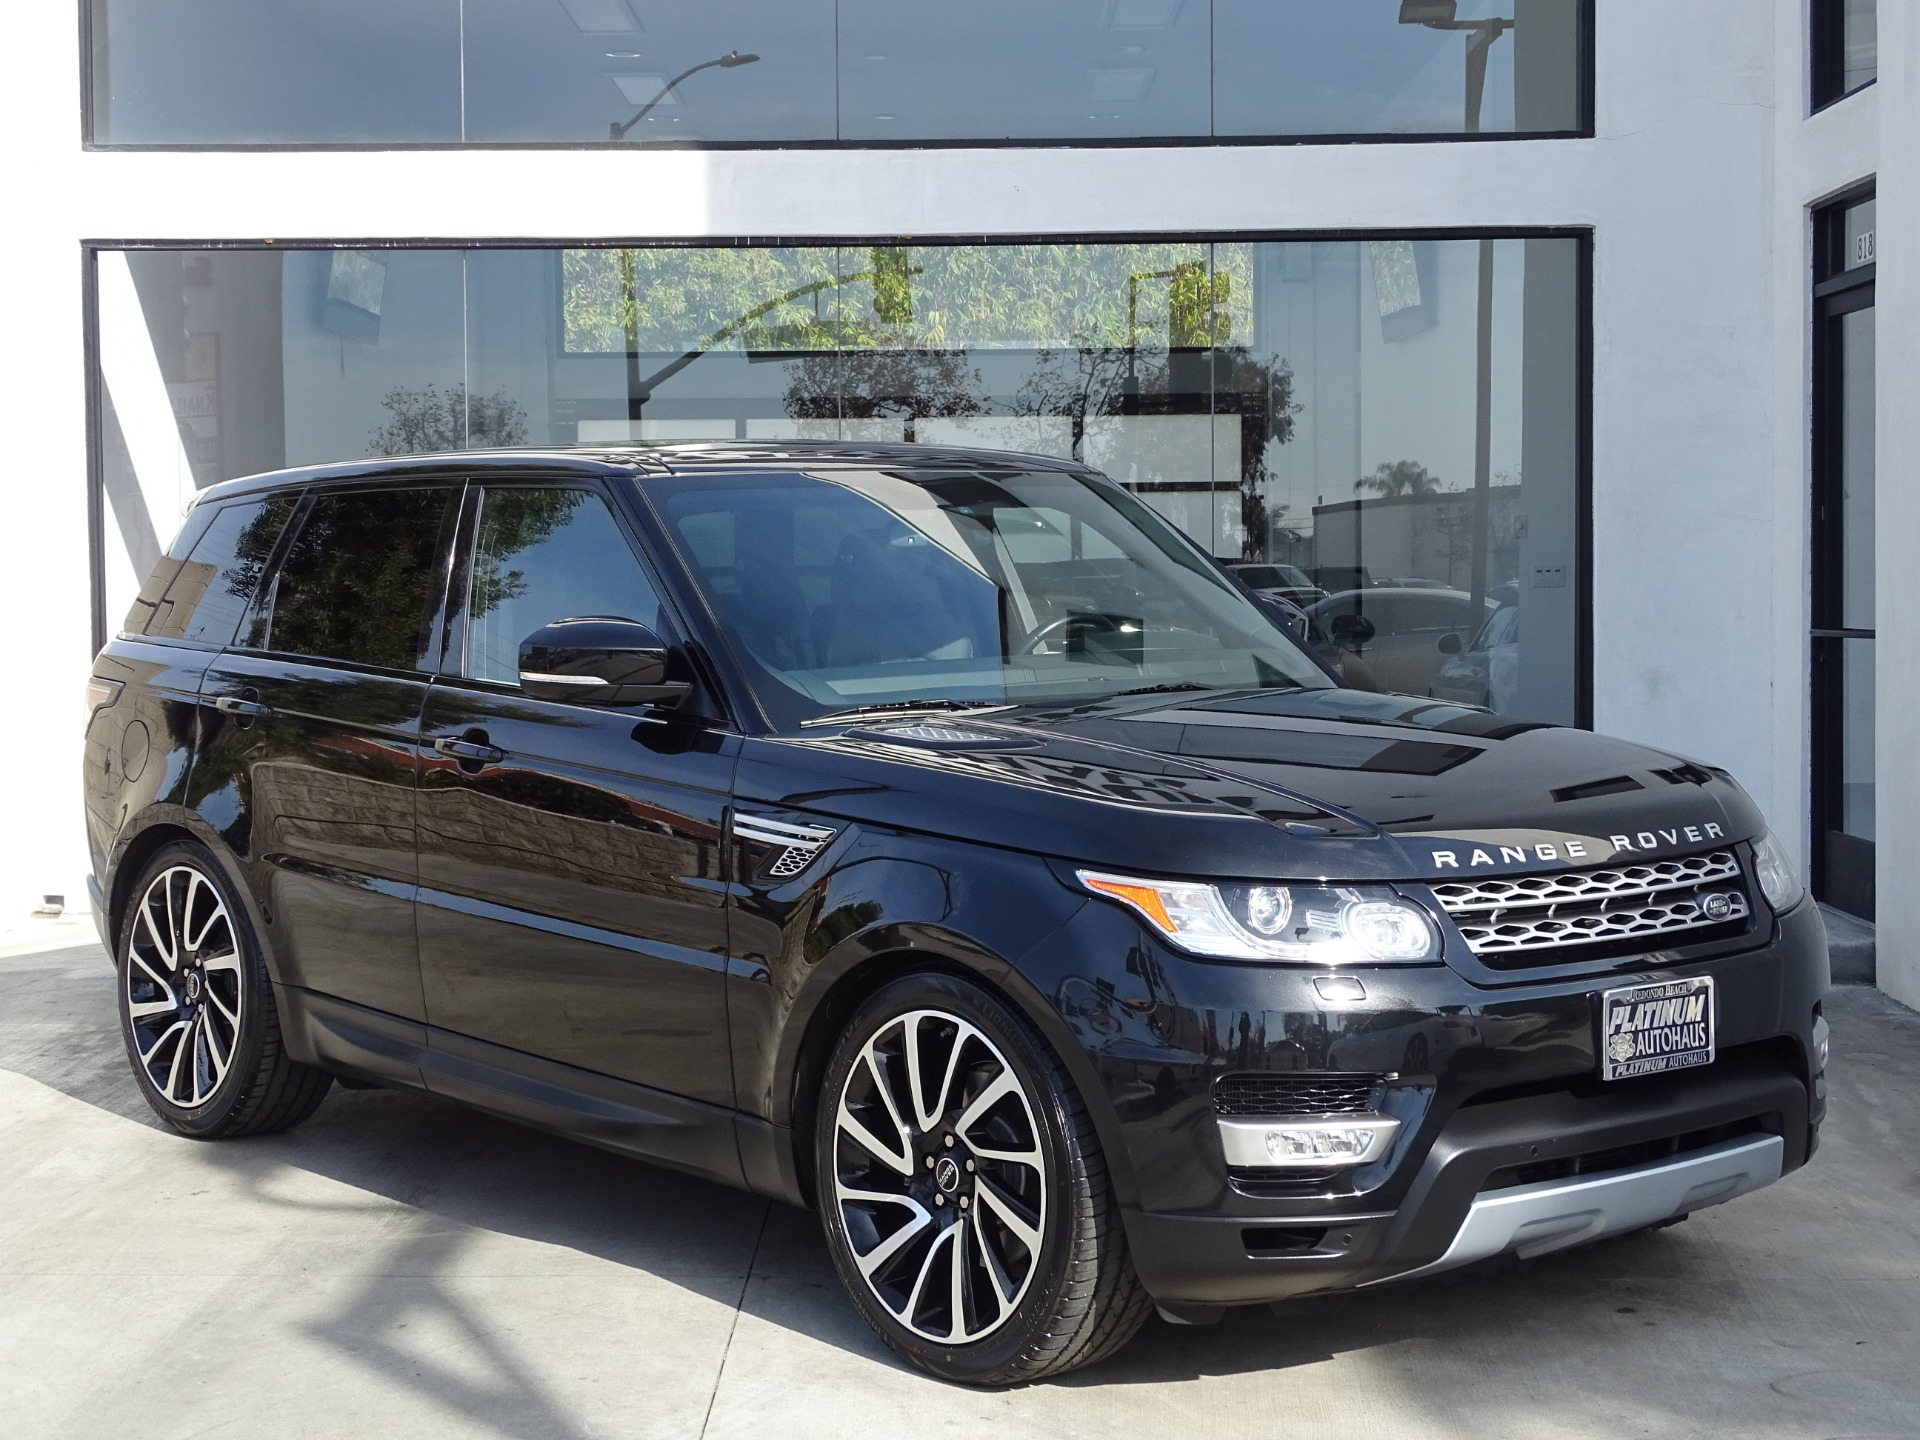 2014 land rover range rover sport hse stock 6047 for sale near redondo beach ca ca land. Black Bedroom Furniture Sets. Home Design Ideas